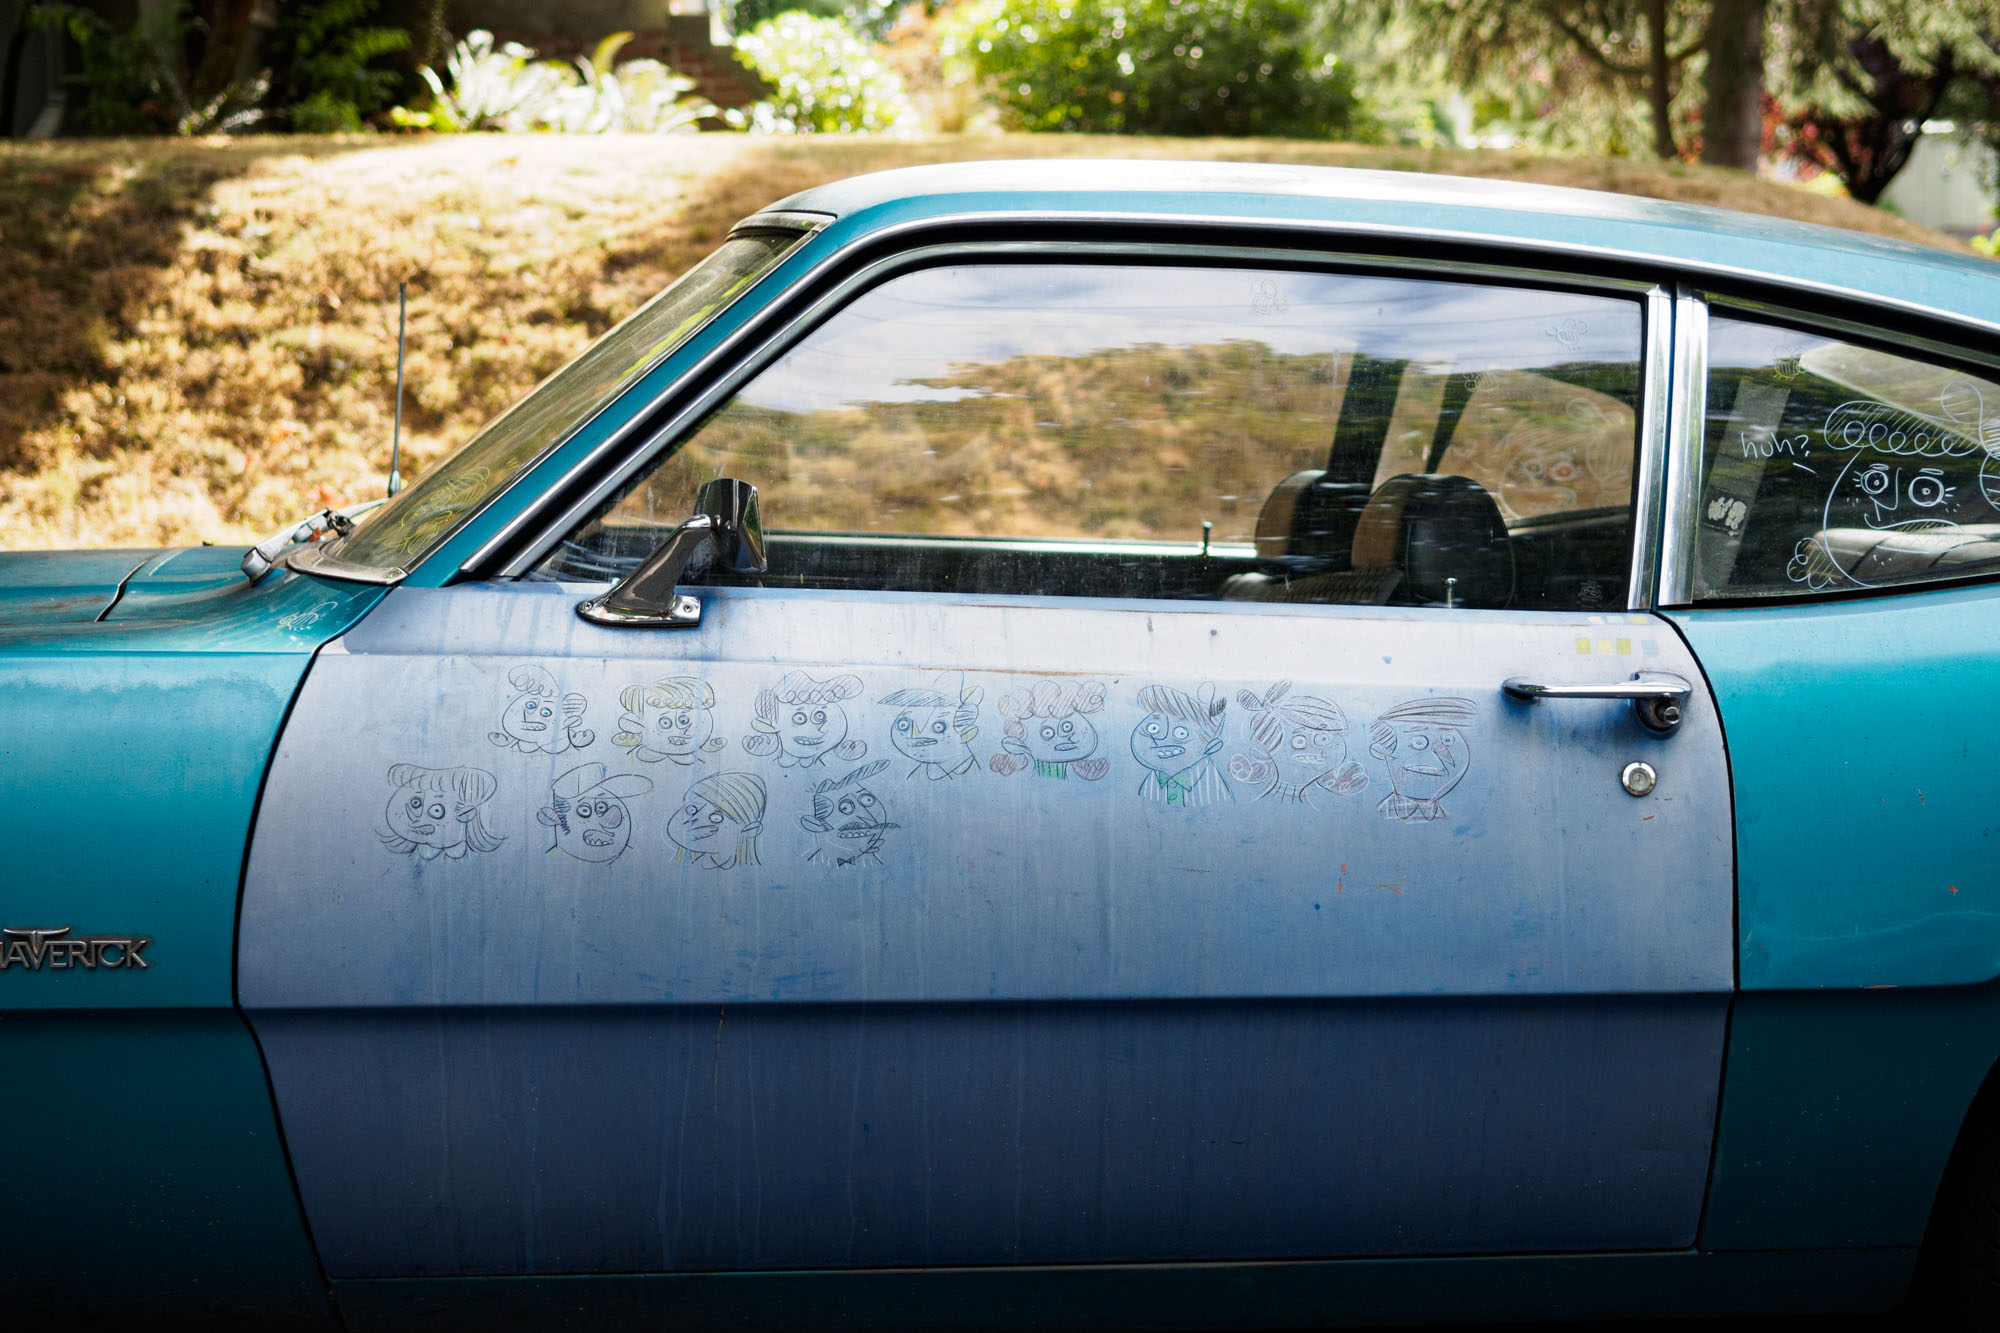 drawings on the side of an old blue car